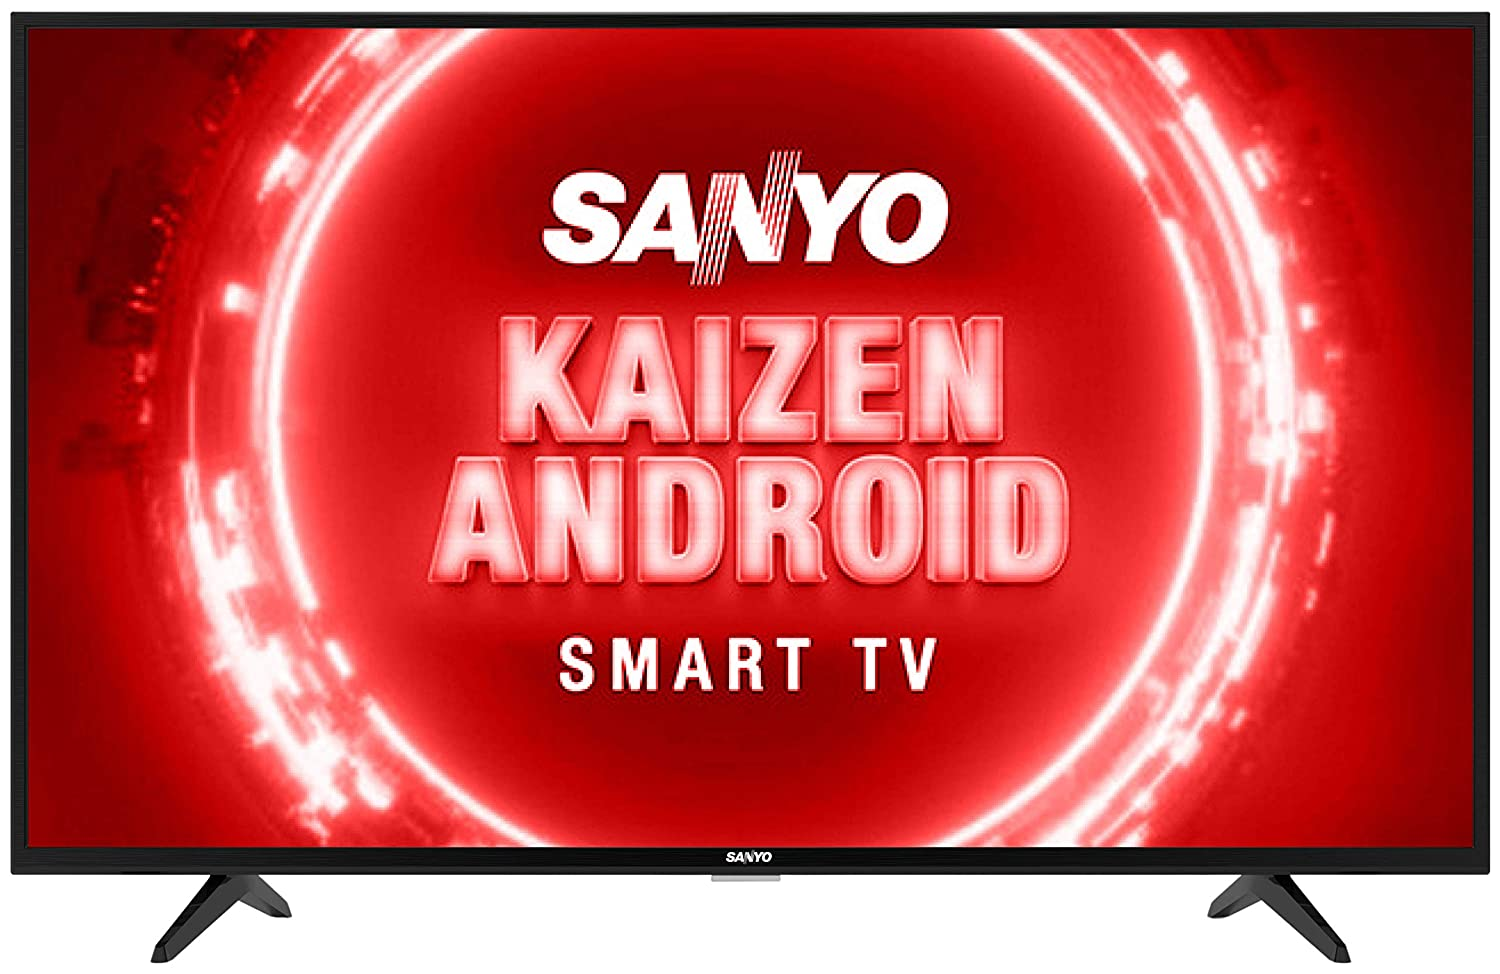 Sanyo 108 cm (43 inches) Kaizen Series Full HD Smart Certified Android LED TV XT-43FHD4S